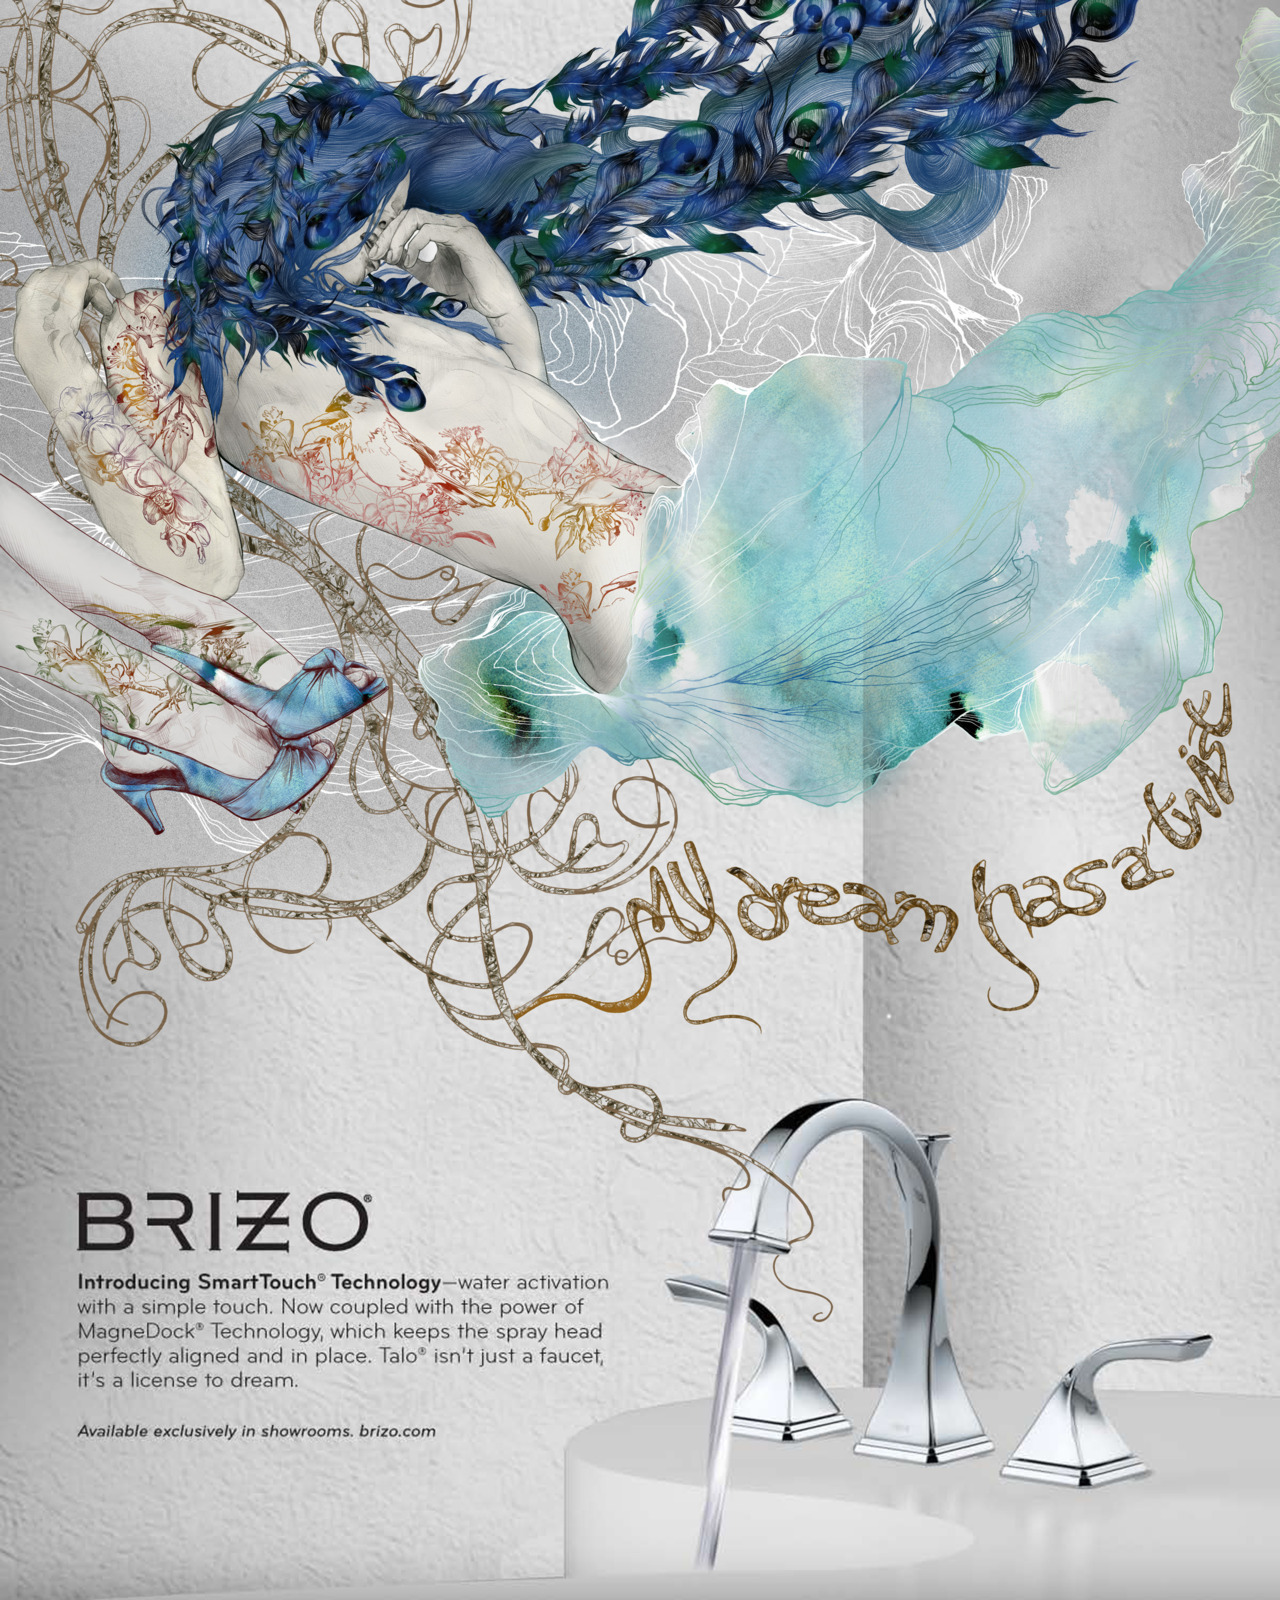 PROJECT/ VIRAGE CLIENT/ BRIZO AGENCY/ YOUNG & LARAMORE. 2010